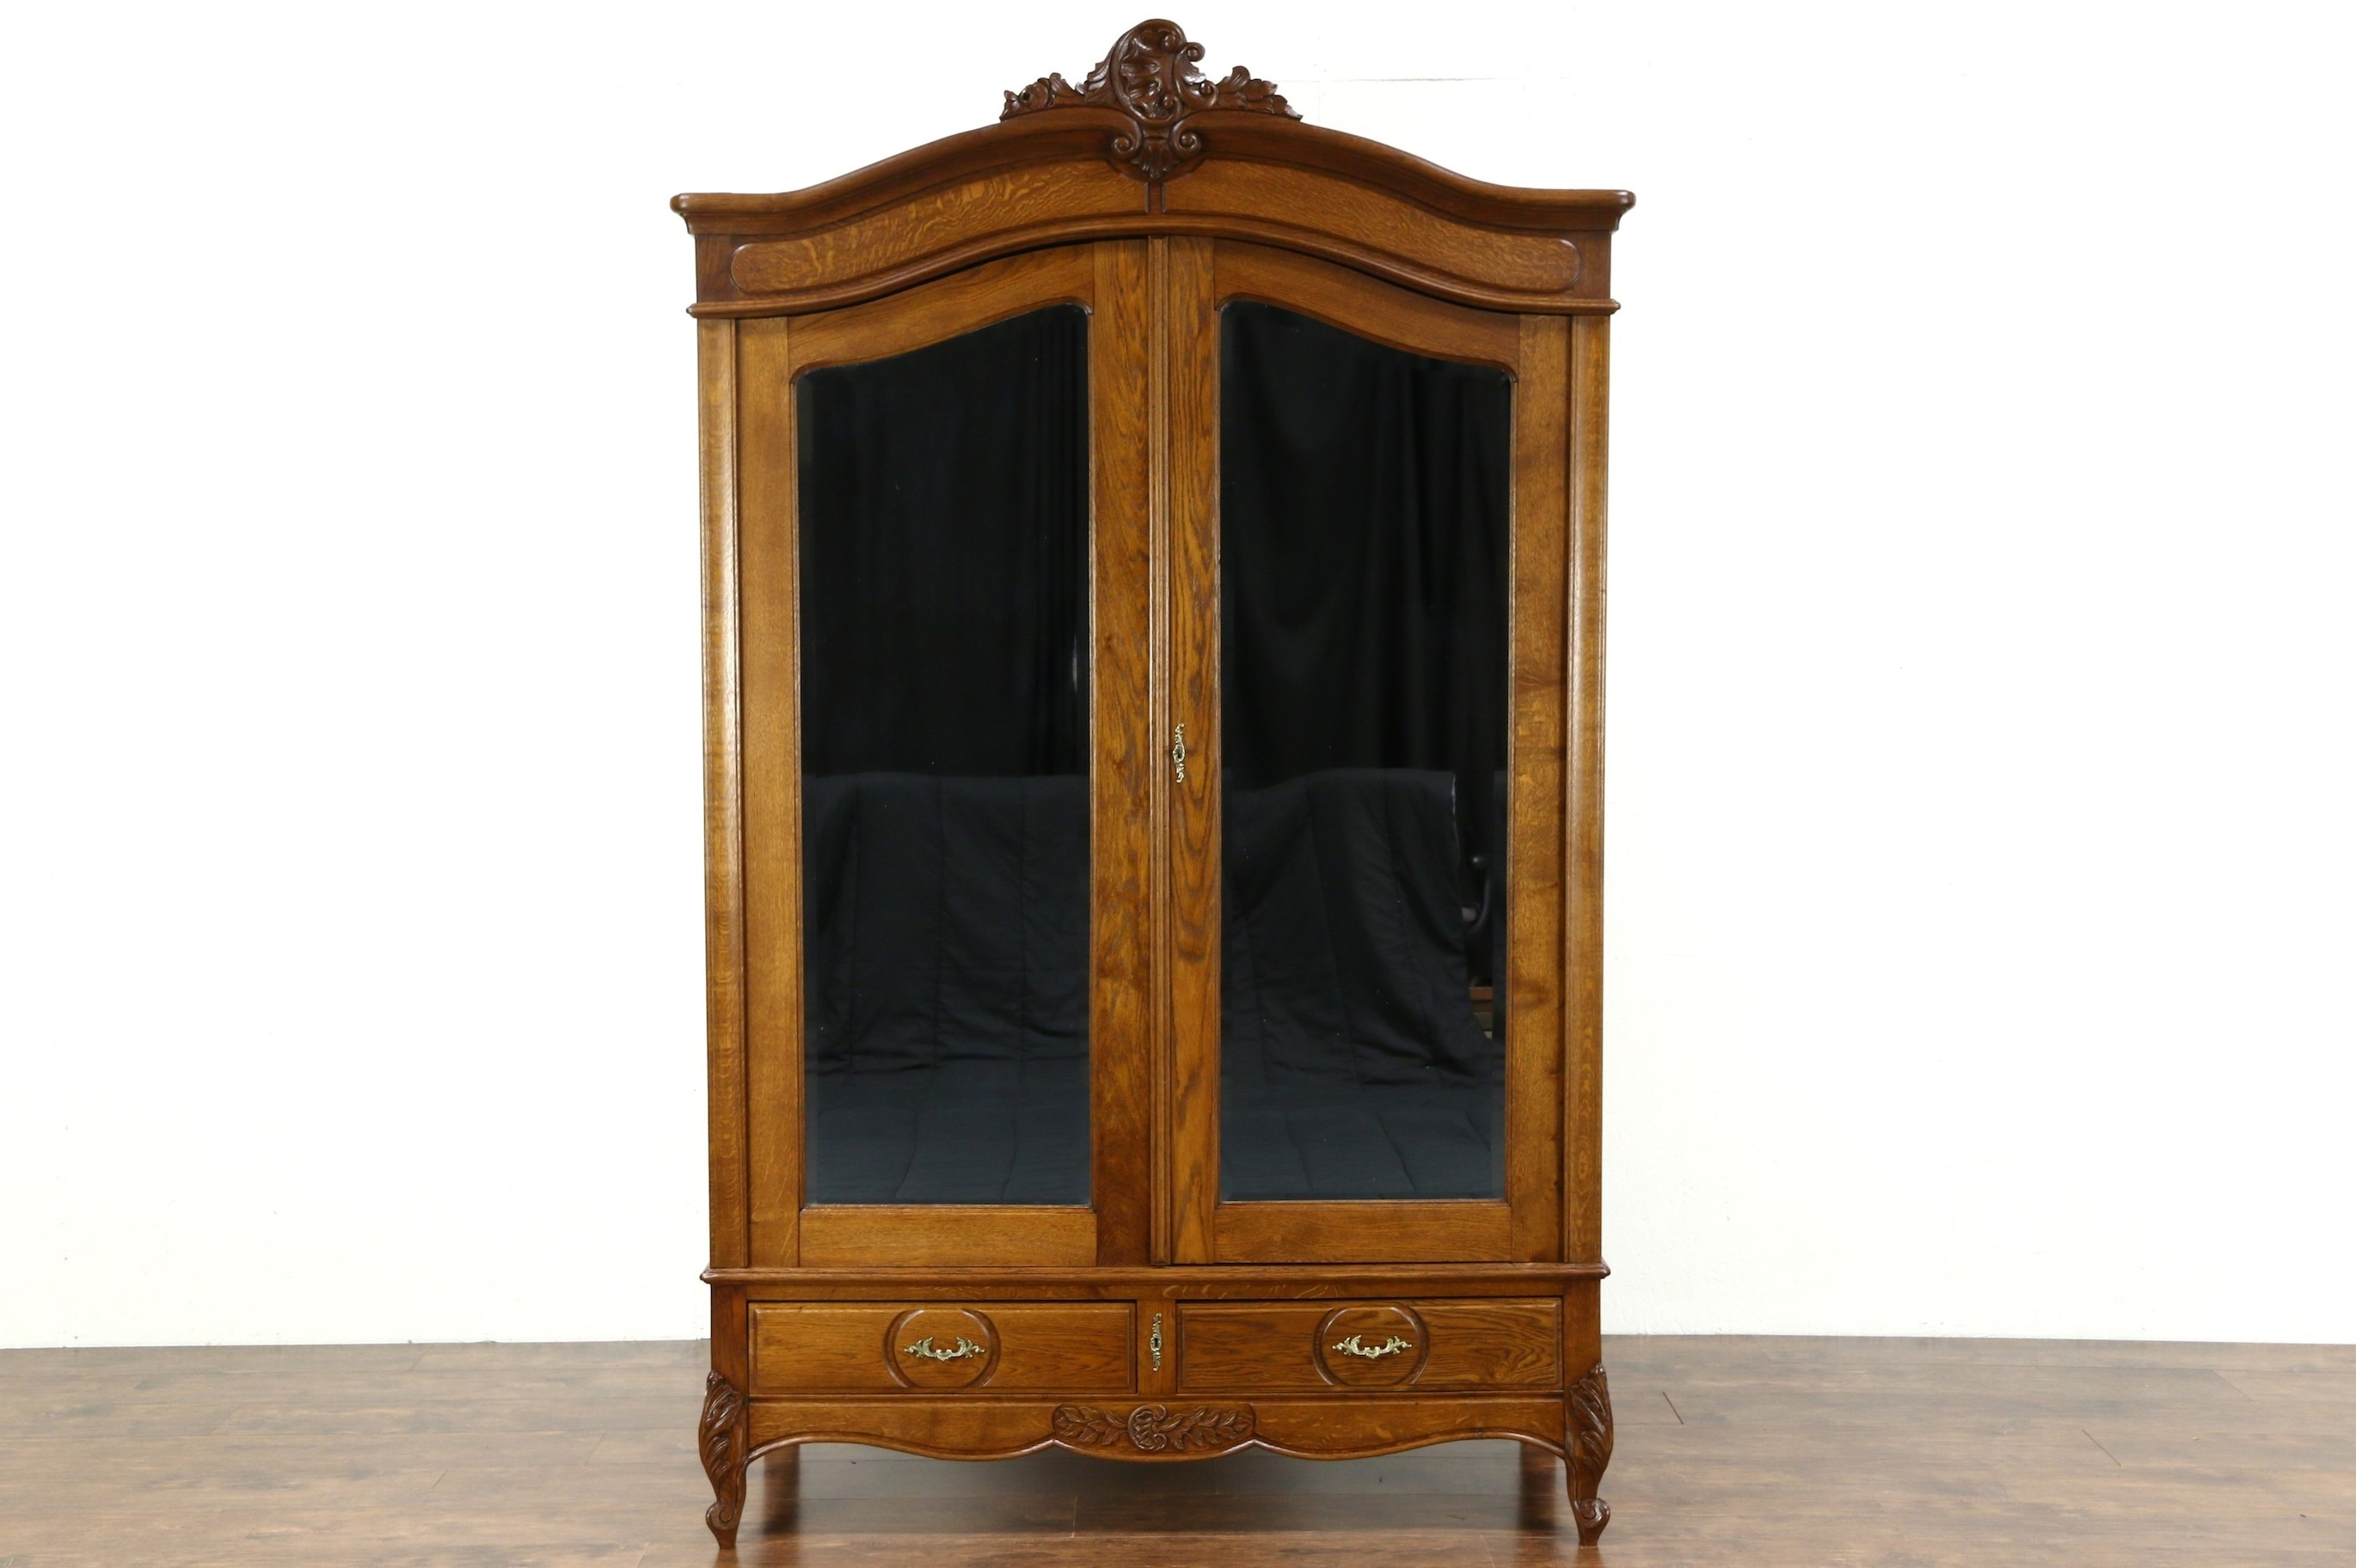 Country French 1920 Antique Oak Armoire Wardrobe Or Closet Regarding Antique Oak Mirrors (View 11 of 15)